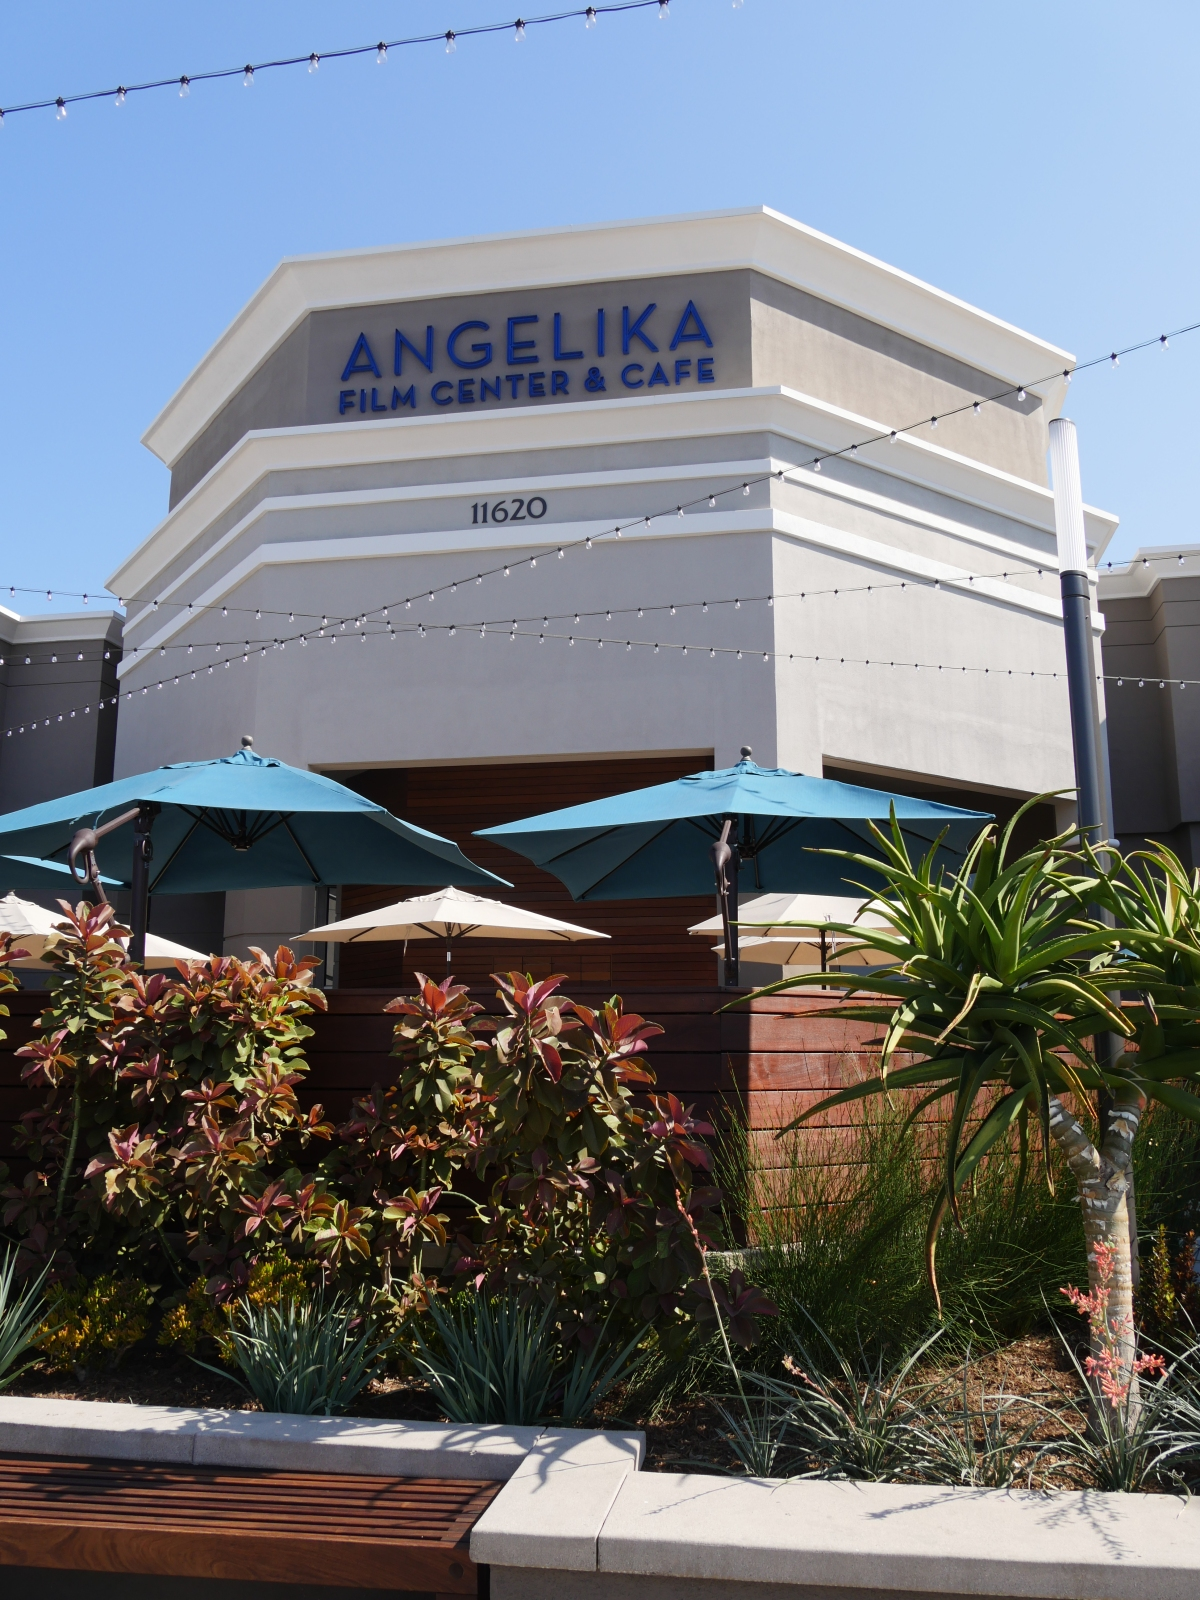 The Angelika Film Center and Cafe Makes Going to See a Movie Worthwhile Again